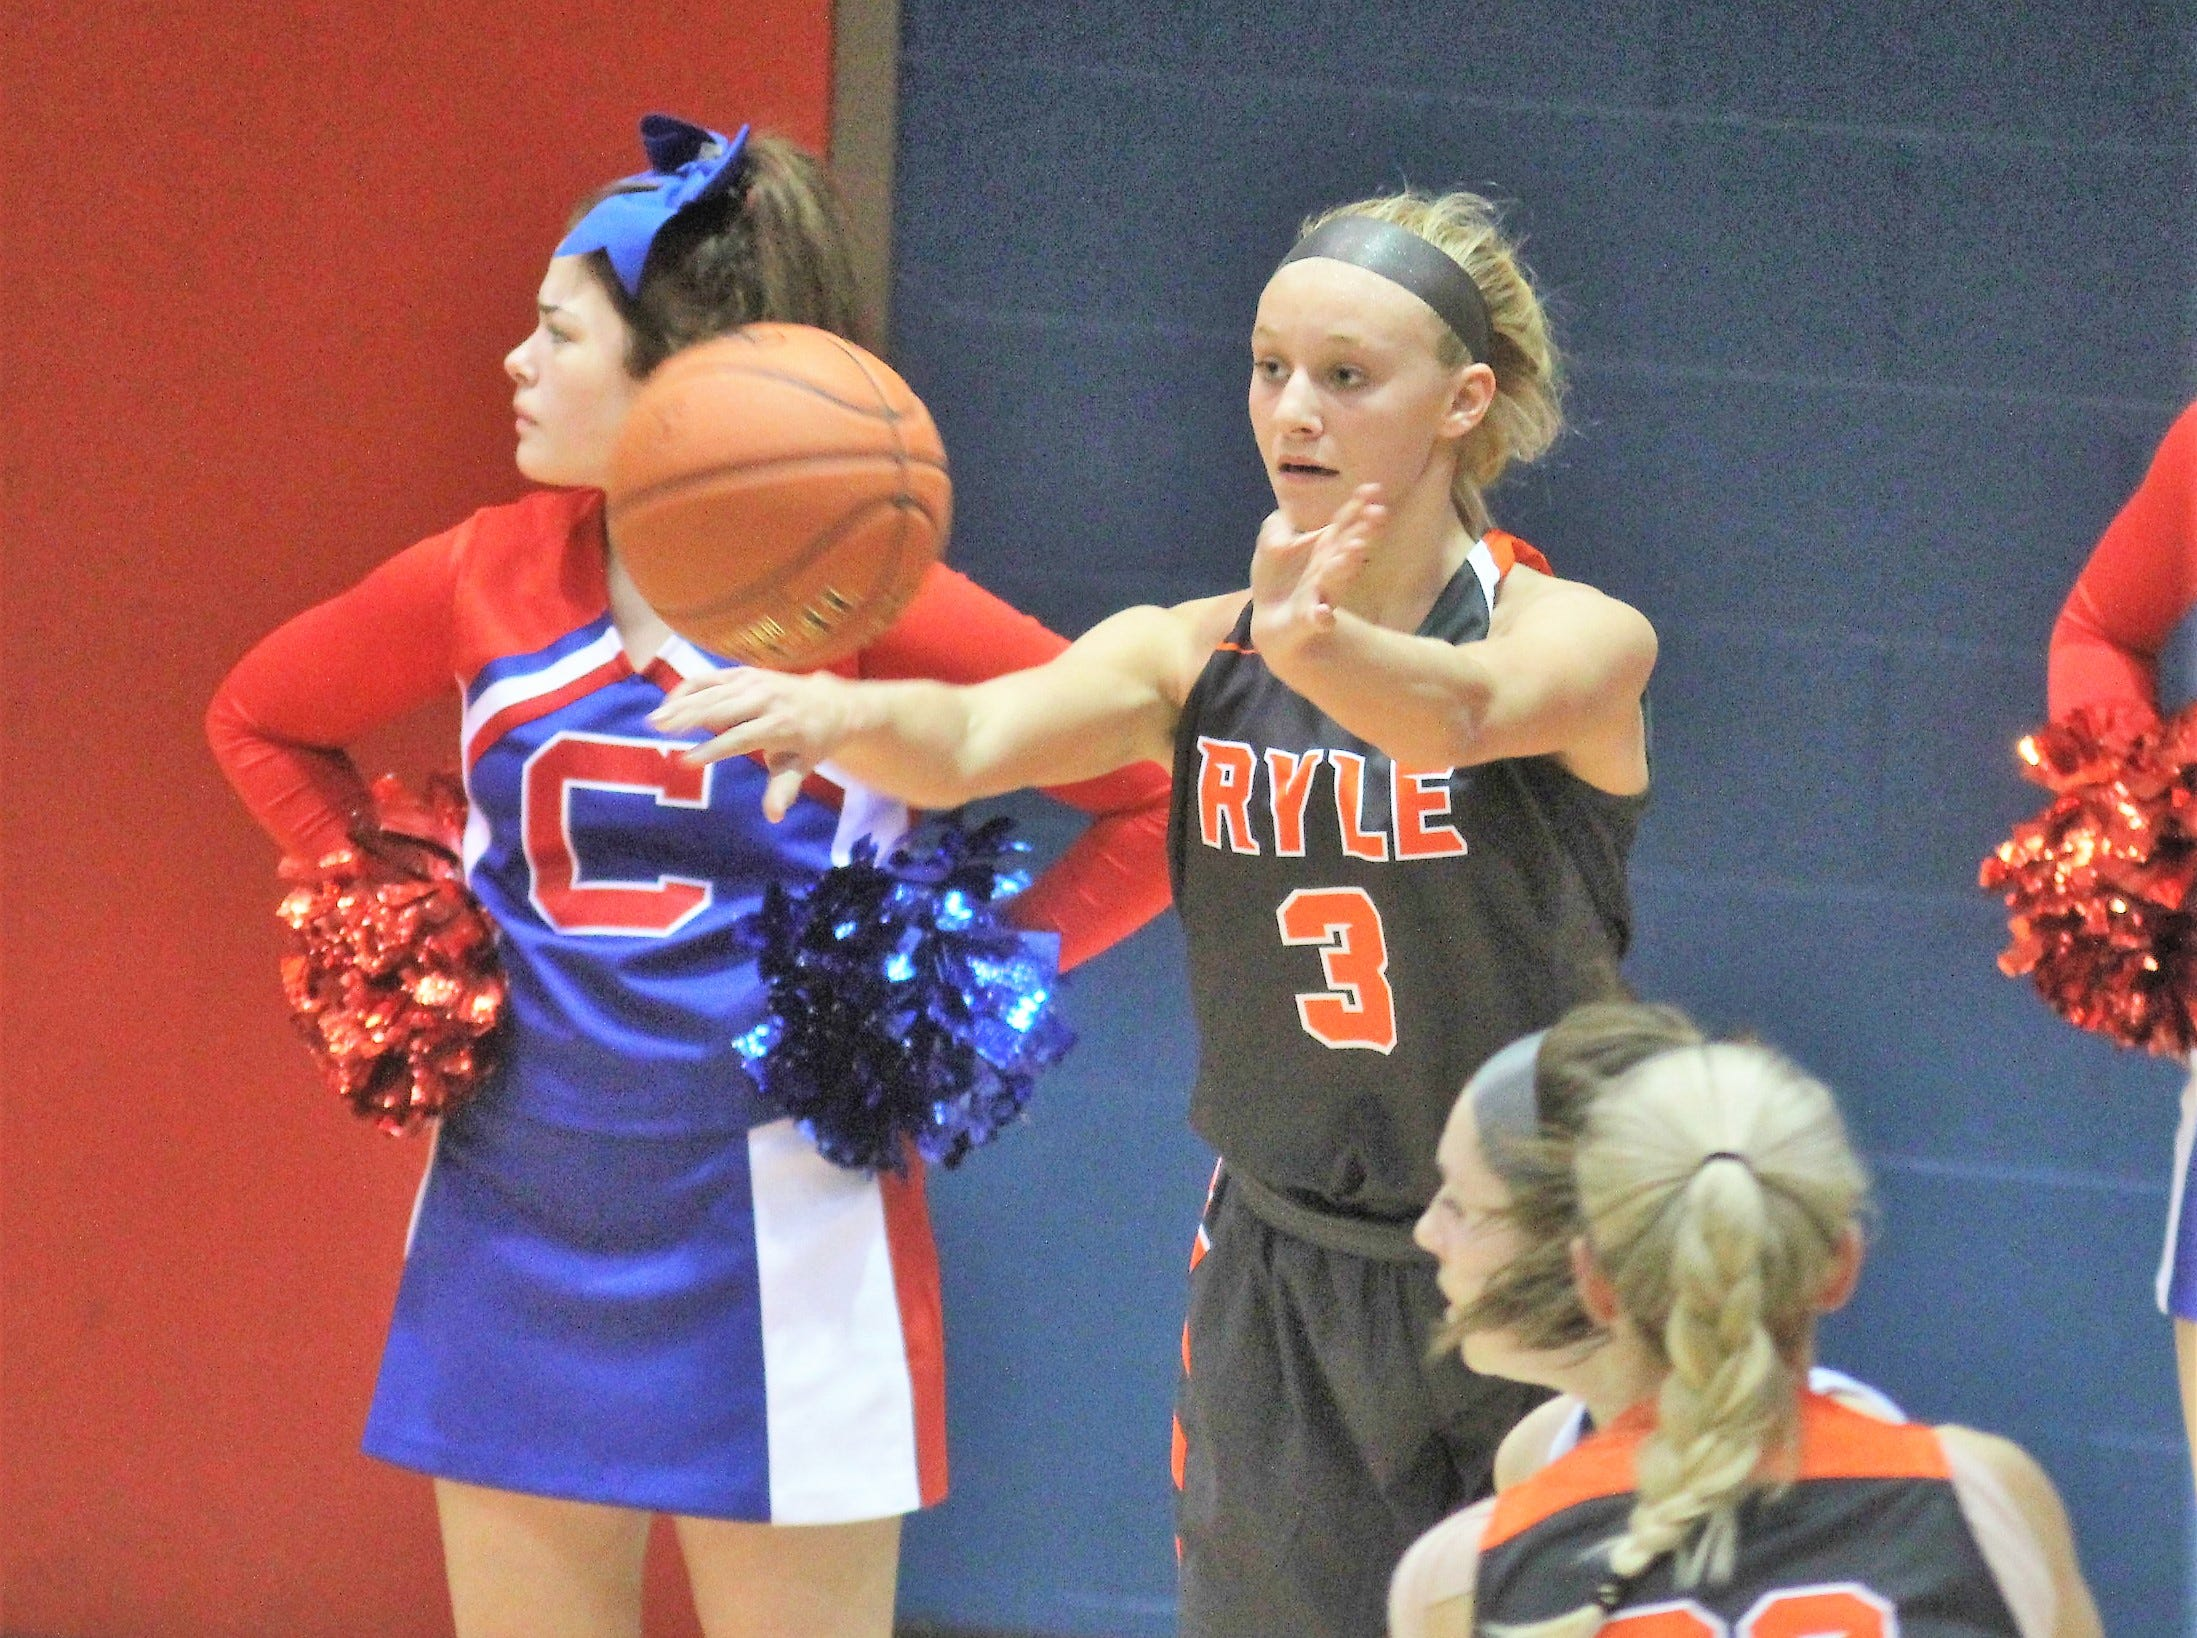 Ryle sophomore Brie Crittendon inbounds the ball as Ryle defeated Conner 60-49 in a girls basketball district game Dec. 7, 2018 at Conner High School, Hebron KY.